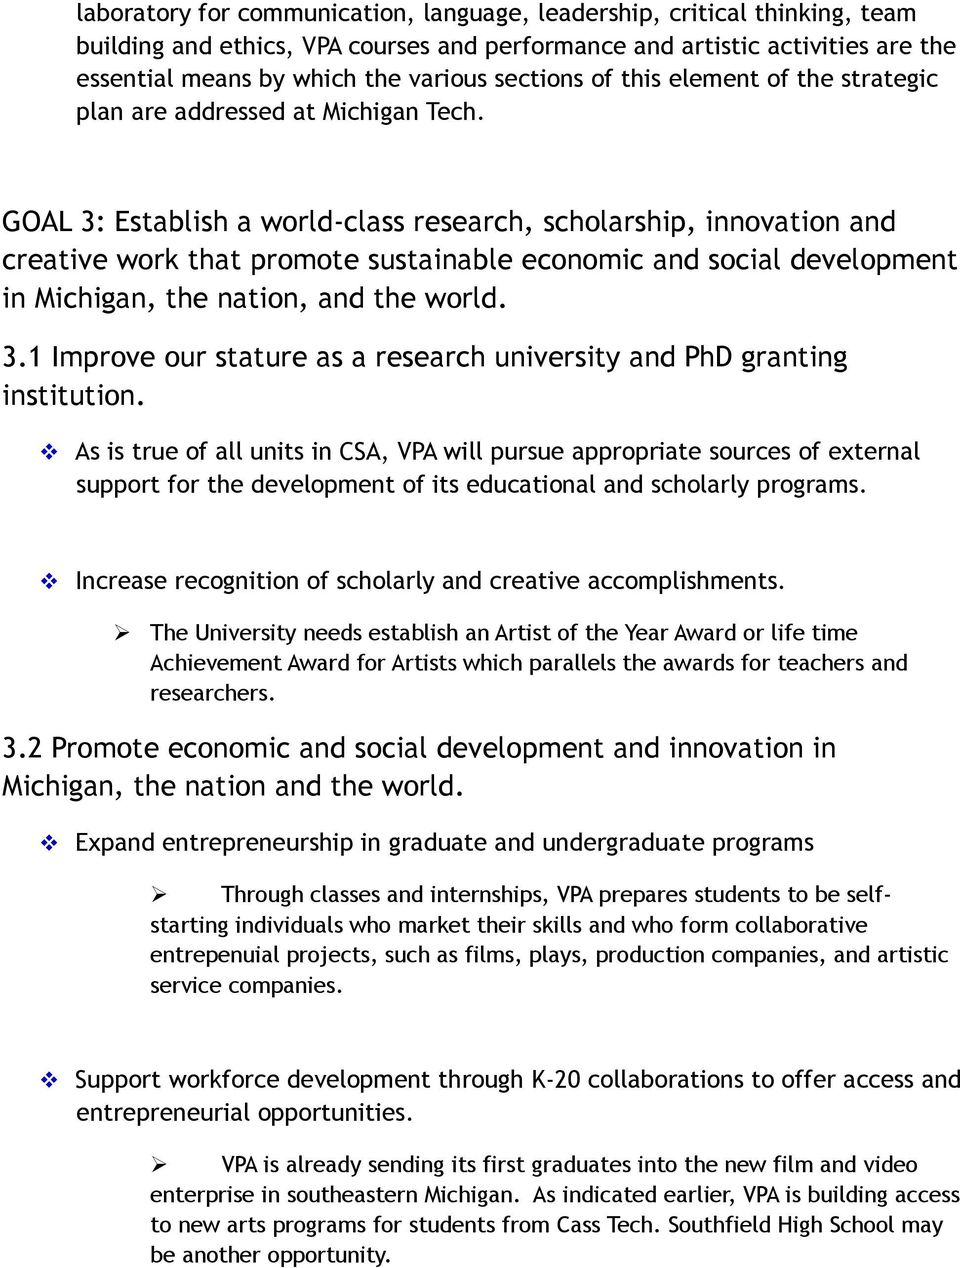 GOAL 3: Establish a world-class research, scholarship, innovation and creative work that promote sustainable economic and social development in Michigan, the nation, and the world. 3.1 Improve our stature as a research university and PhD granting institution.